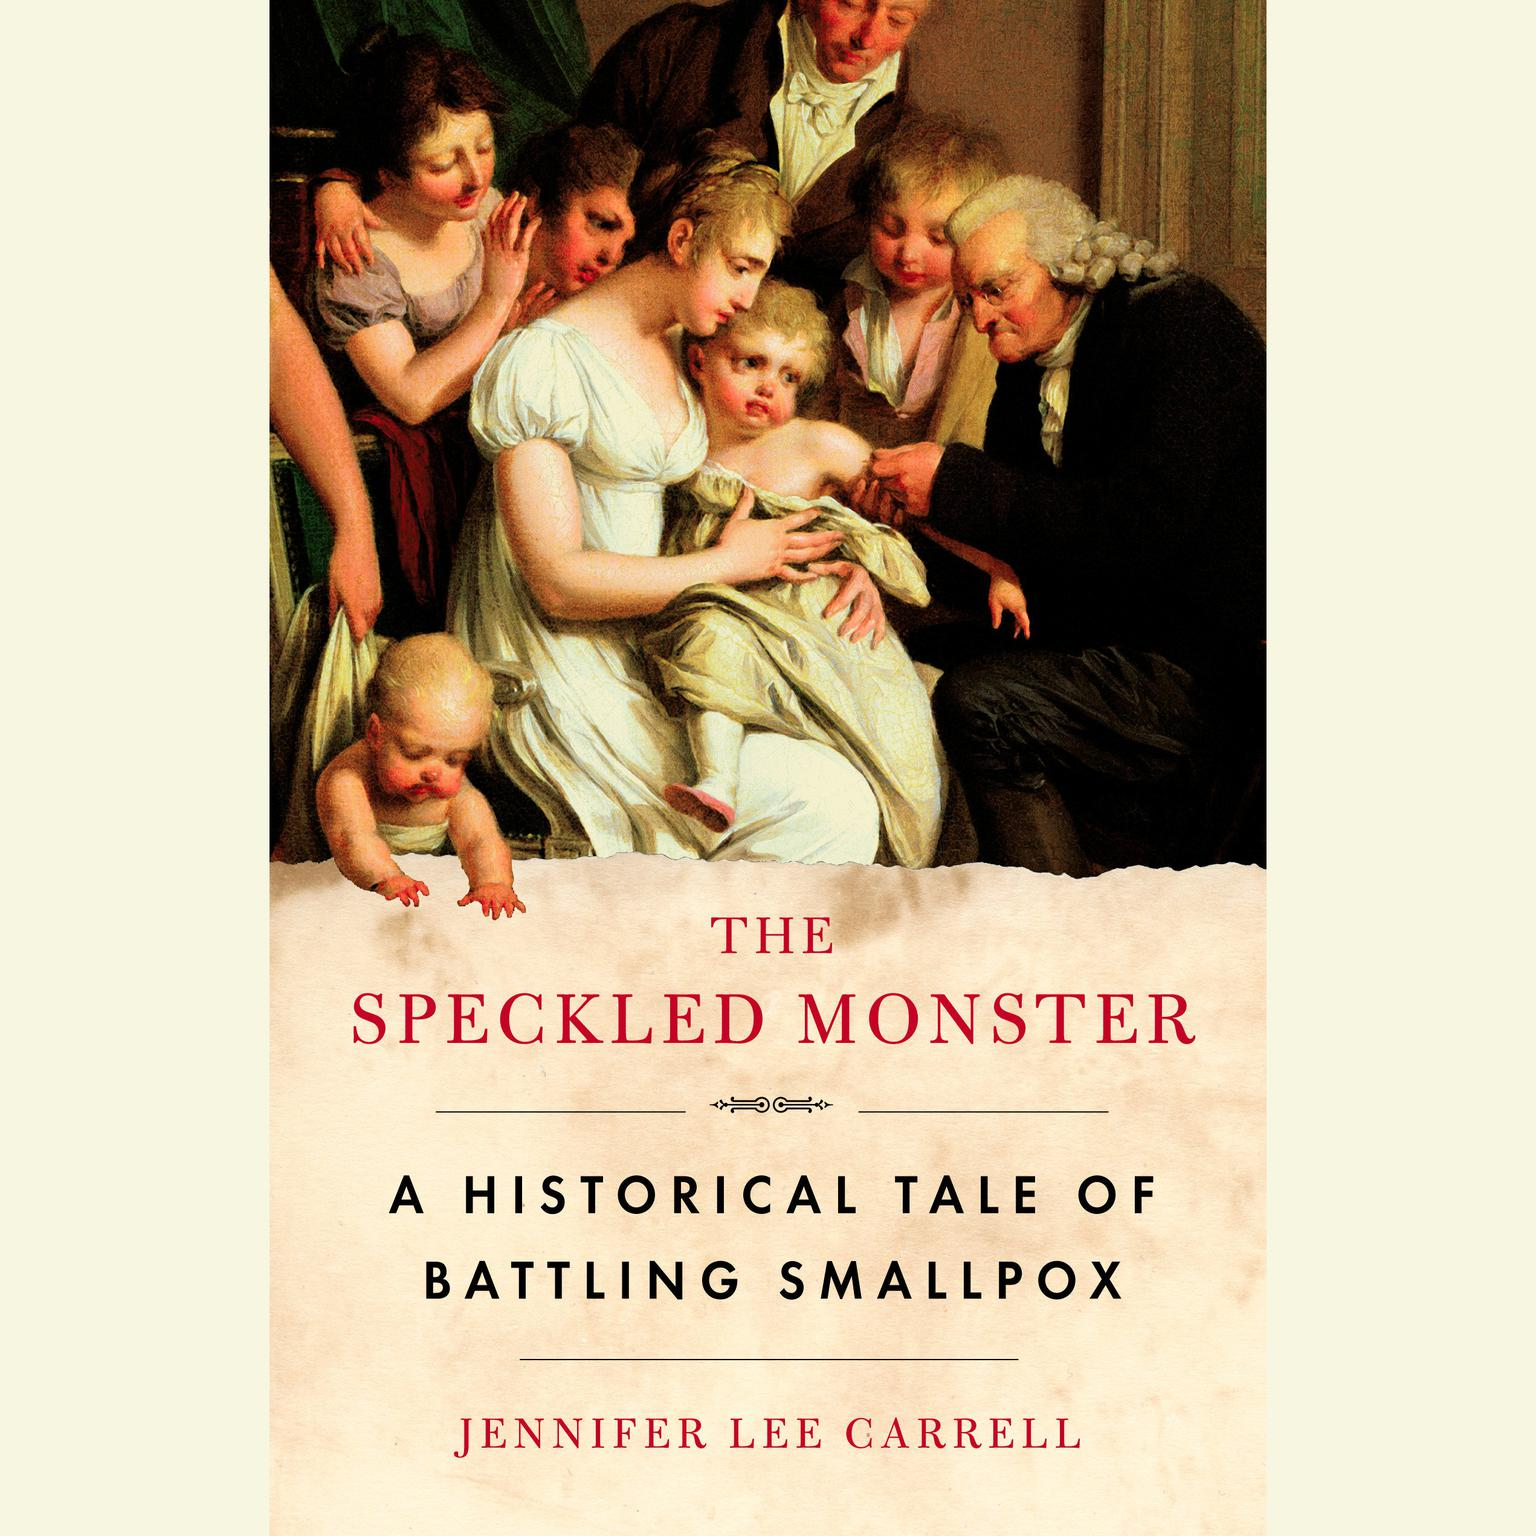 Printable The Speckled Monster: A Historical Tale of Battling Smallpox Audiobook Cover Art